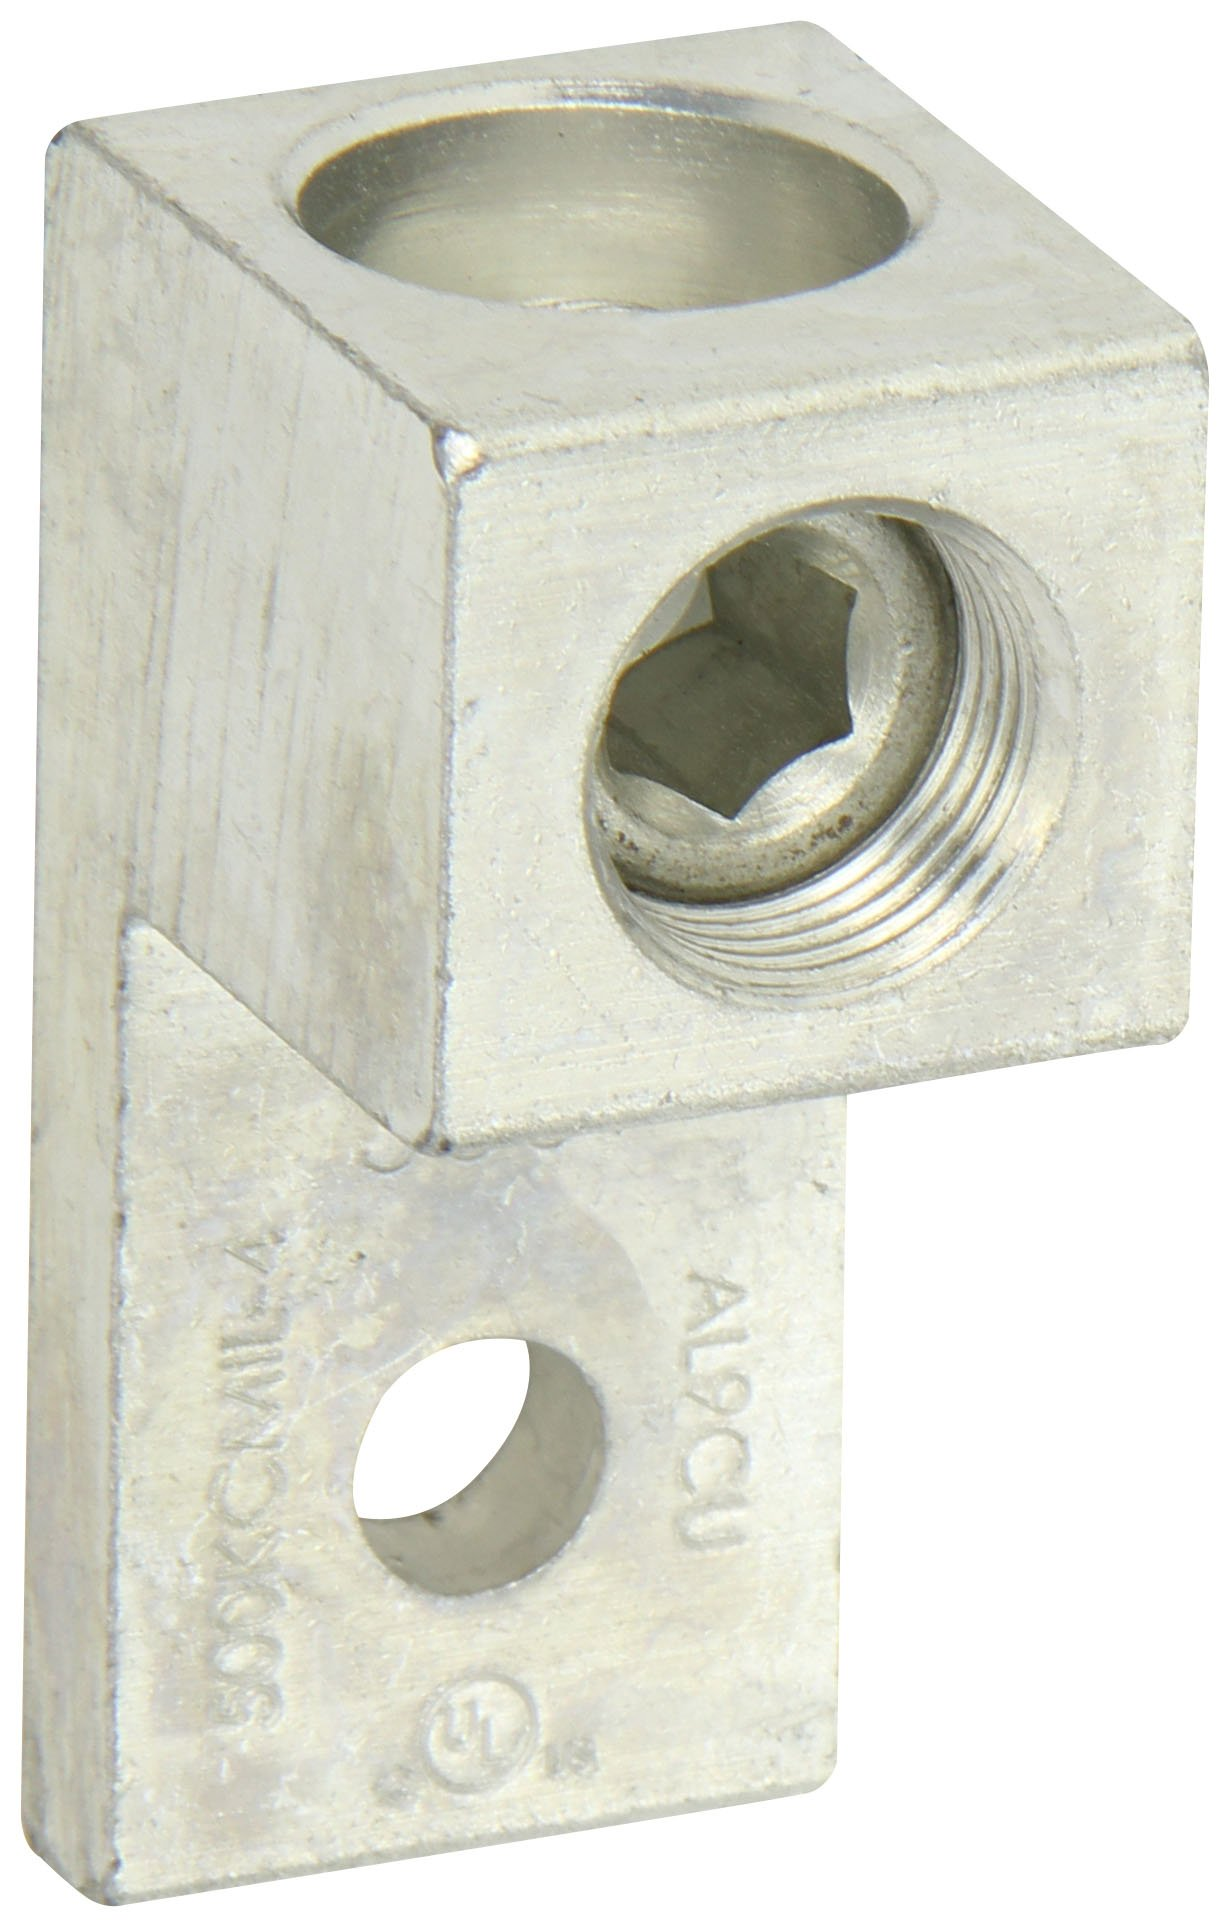 Dual Rated Mechanical Connector, Single Lug, 500MCM-4AWG Wire Range, 0.41'' Mounting Hole, 1.2'' Width, 1.41'' Height, 2.75'' Length